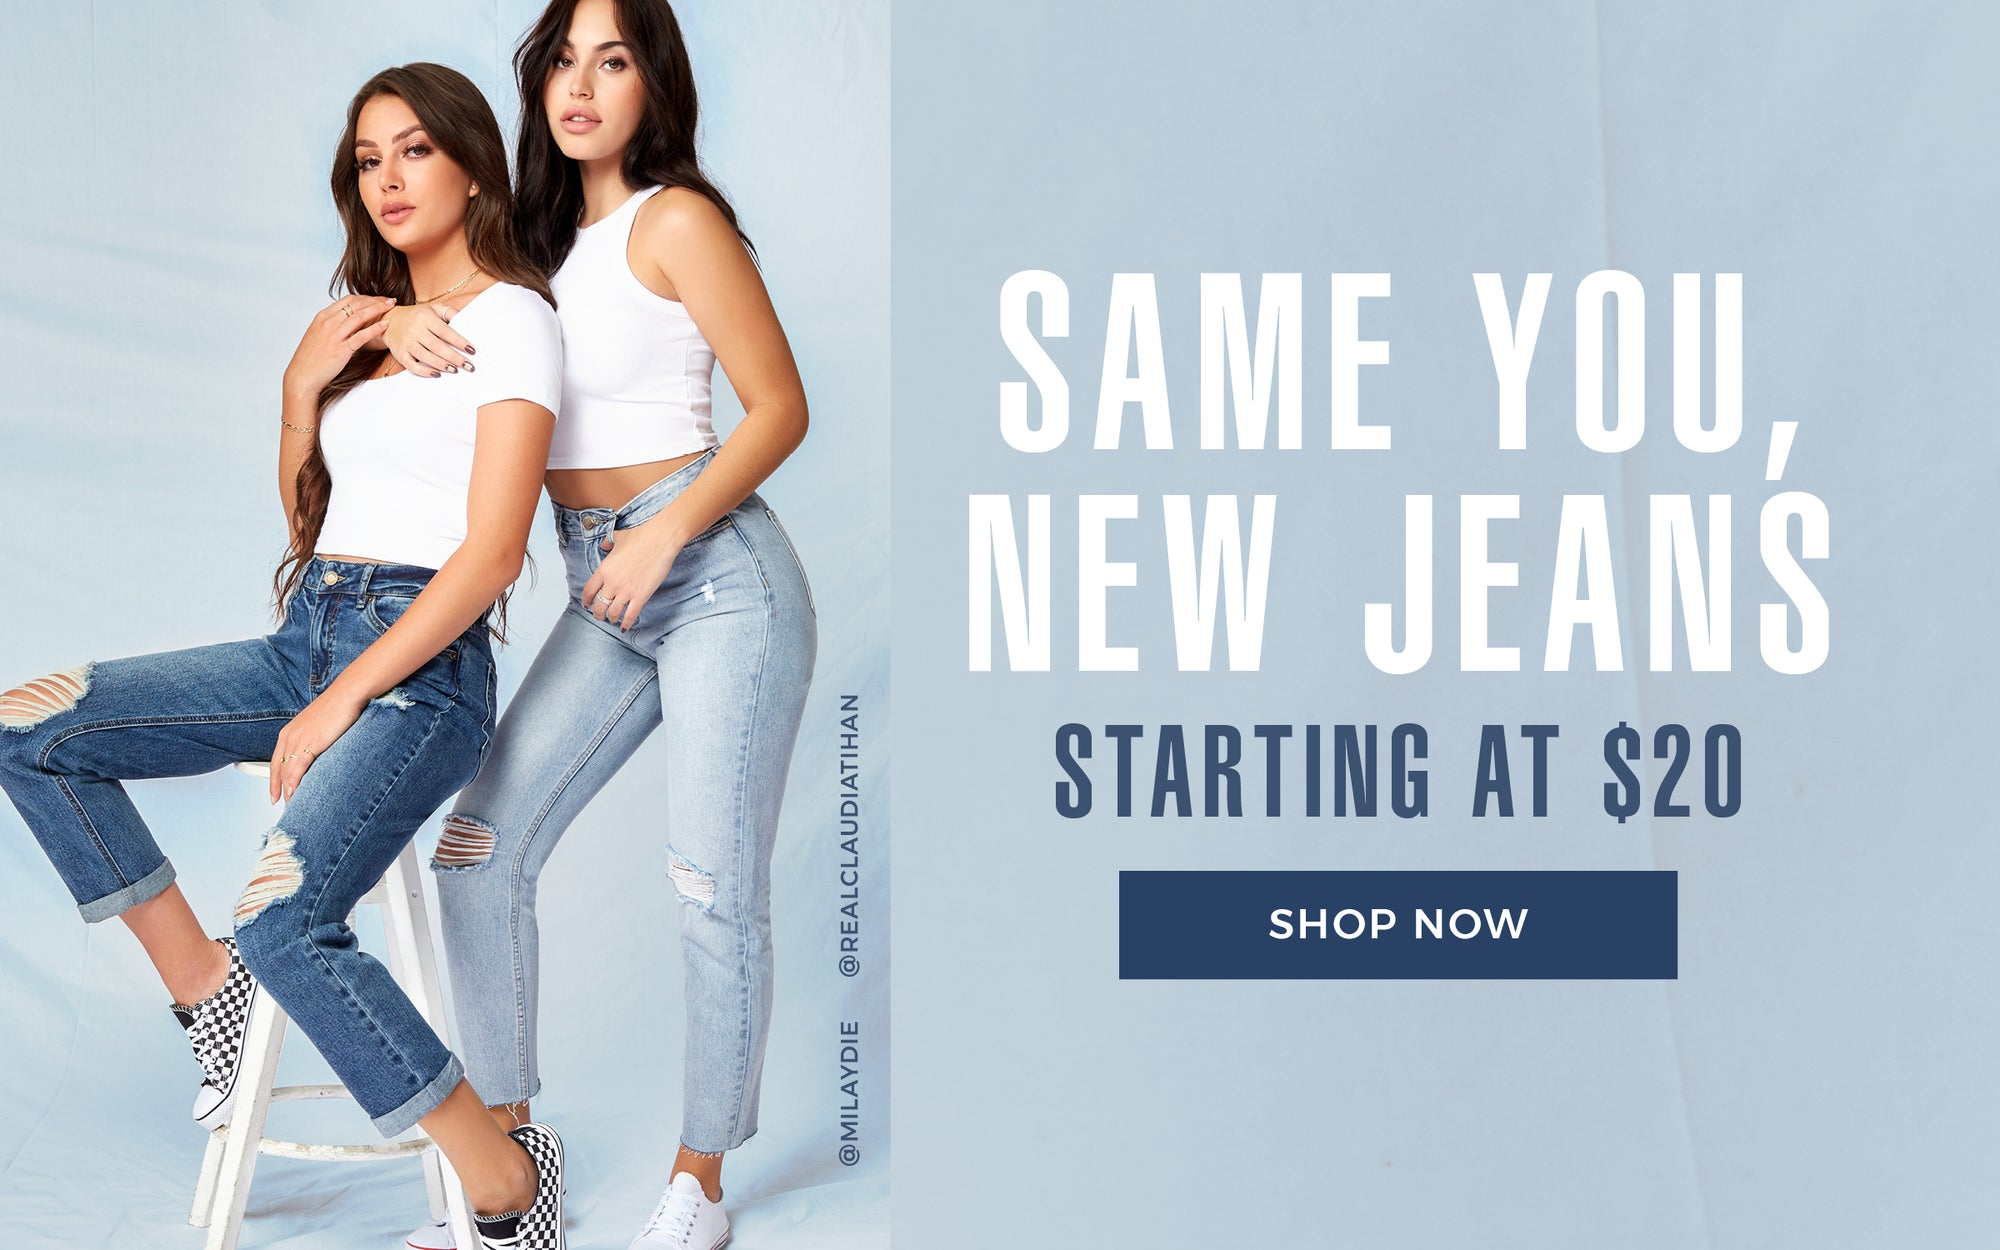 Urban Planet - Same You, New Jeans - Shop now